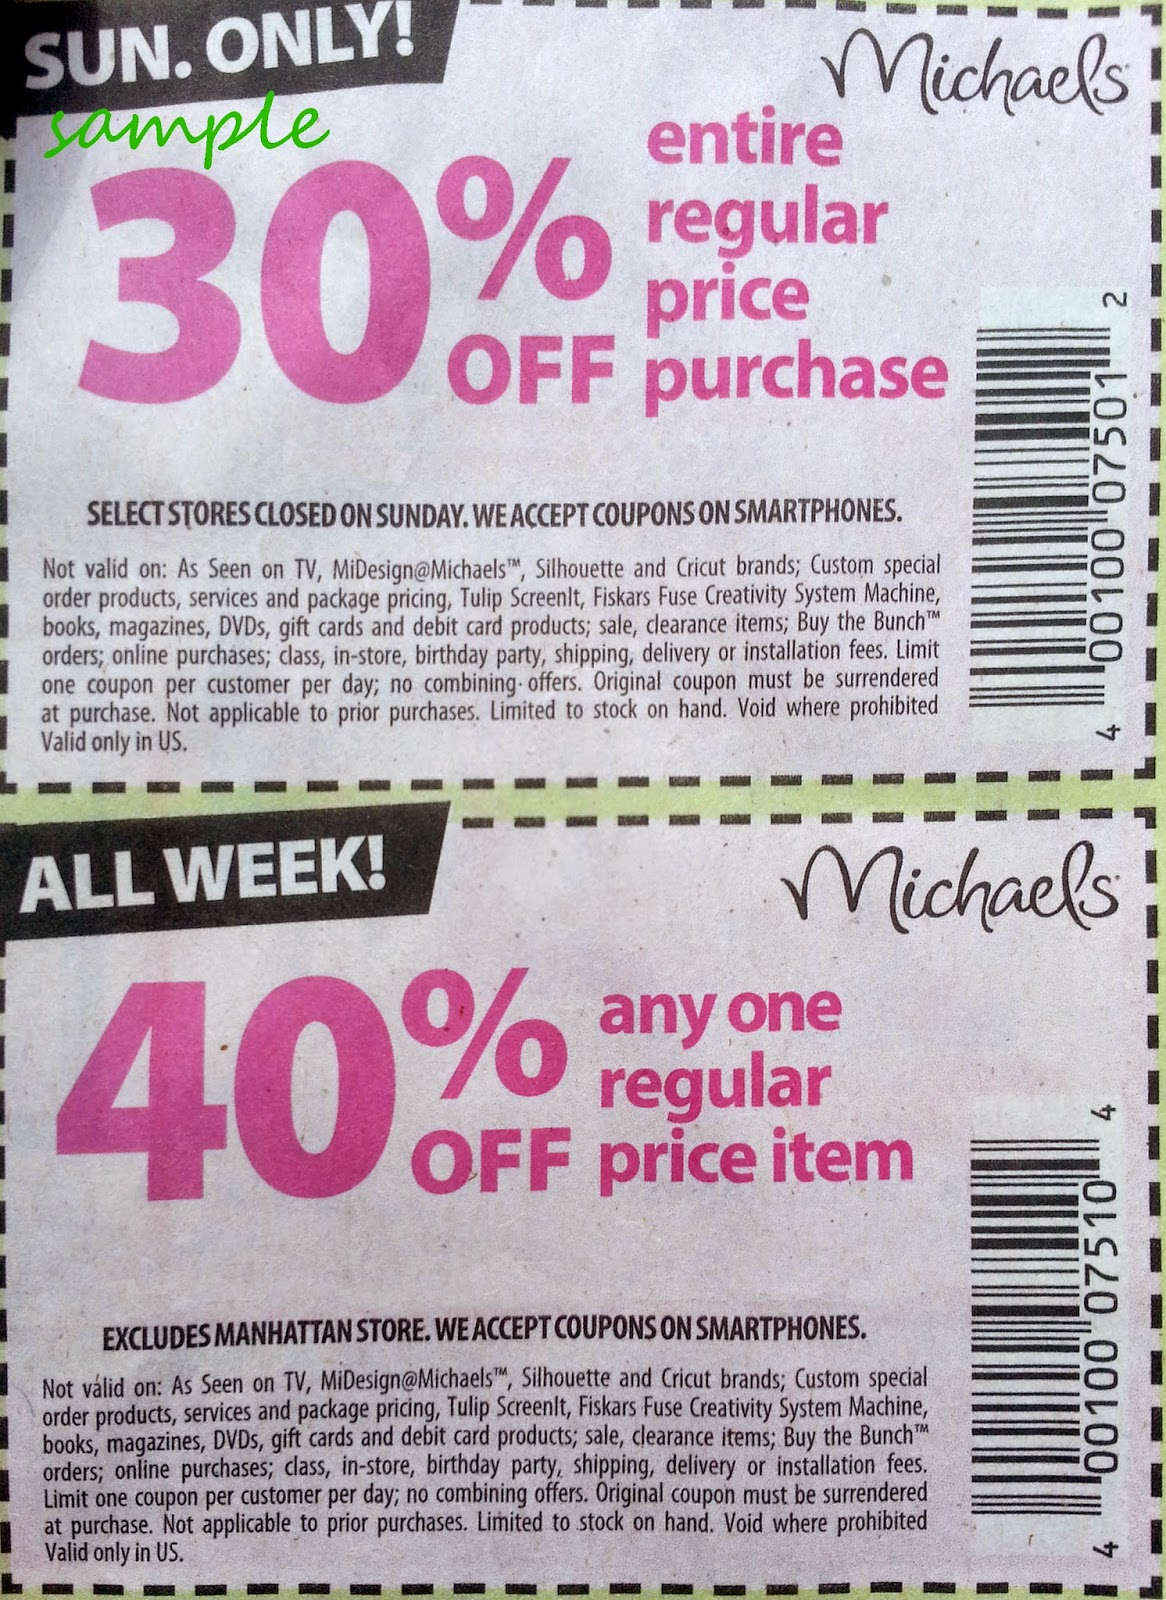 Discounted coupons